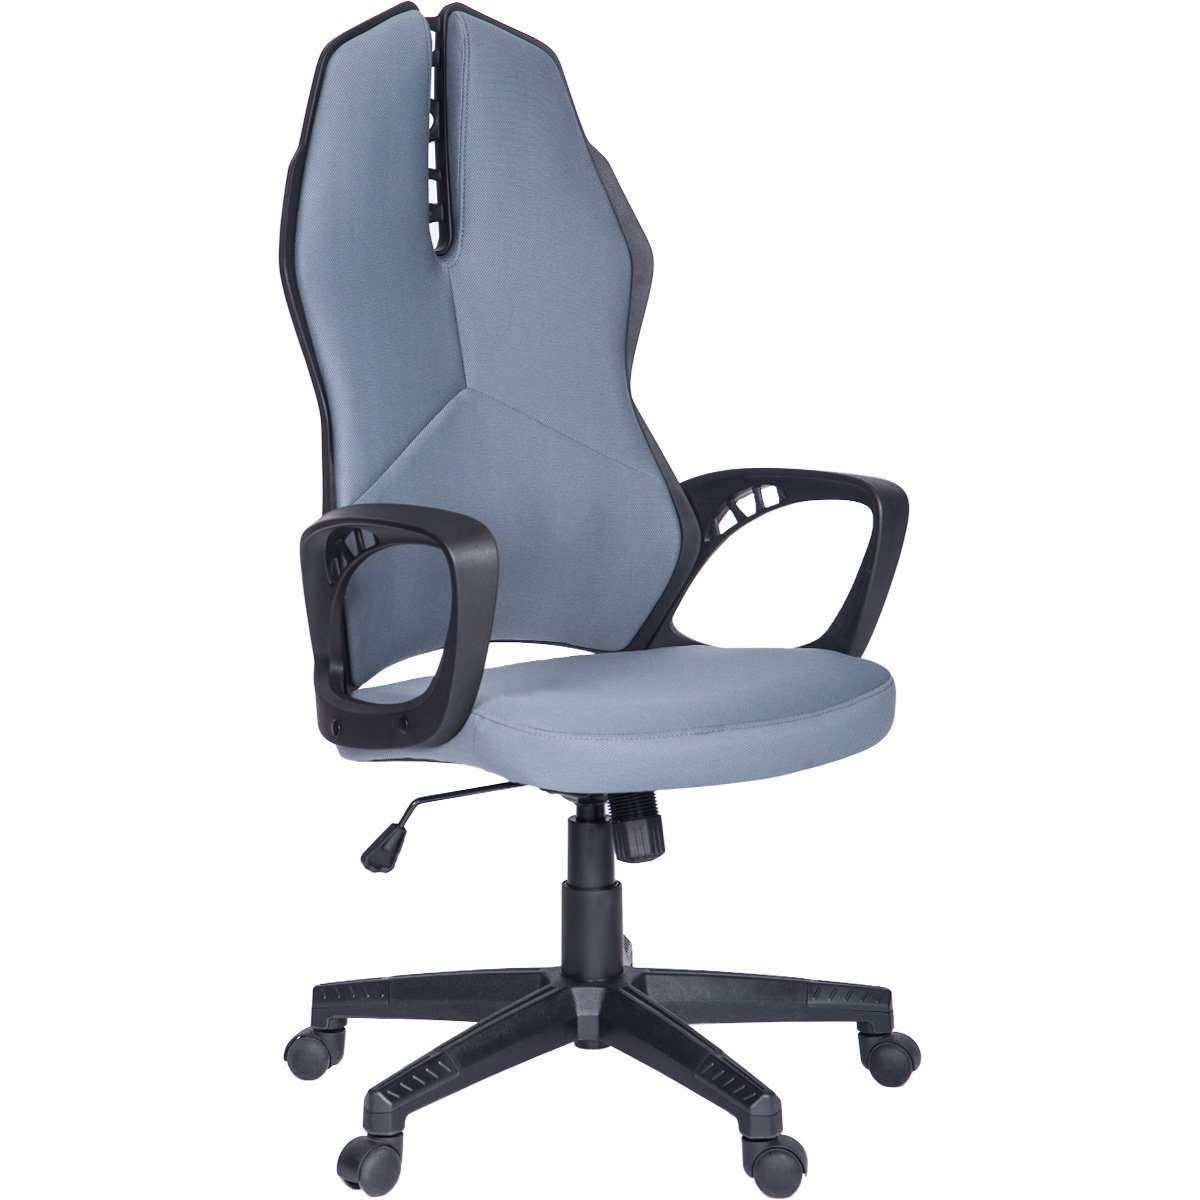 ModernLuxe Terra Series Racing Style Gaming Chair Soft Mesh Fabric Task Chair (Black)